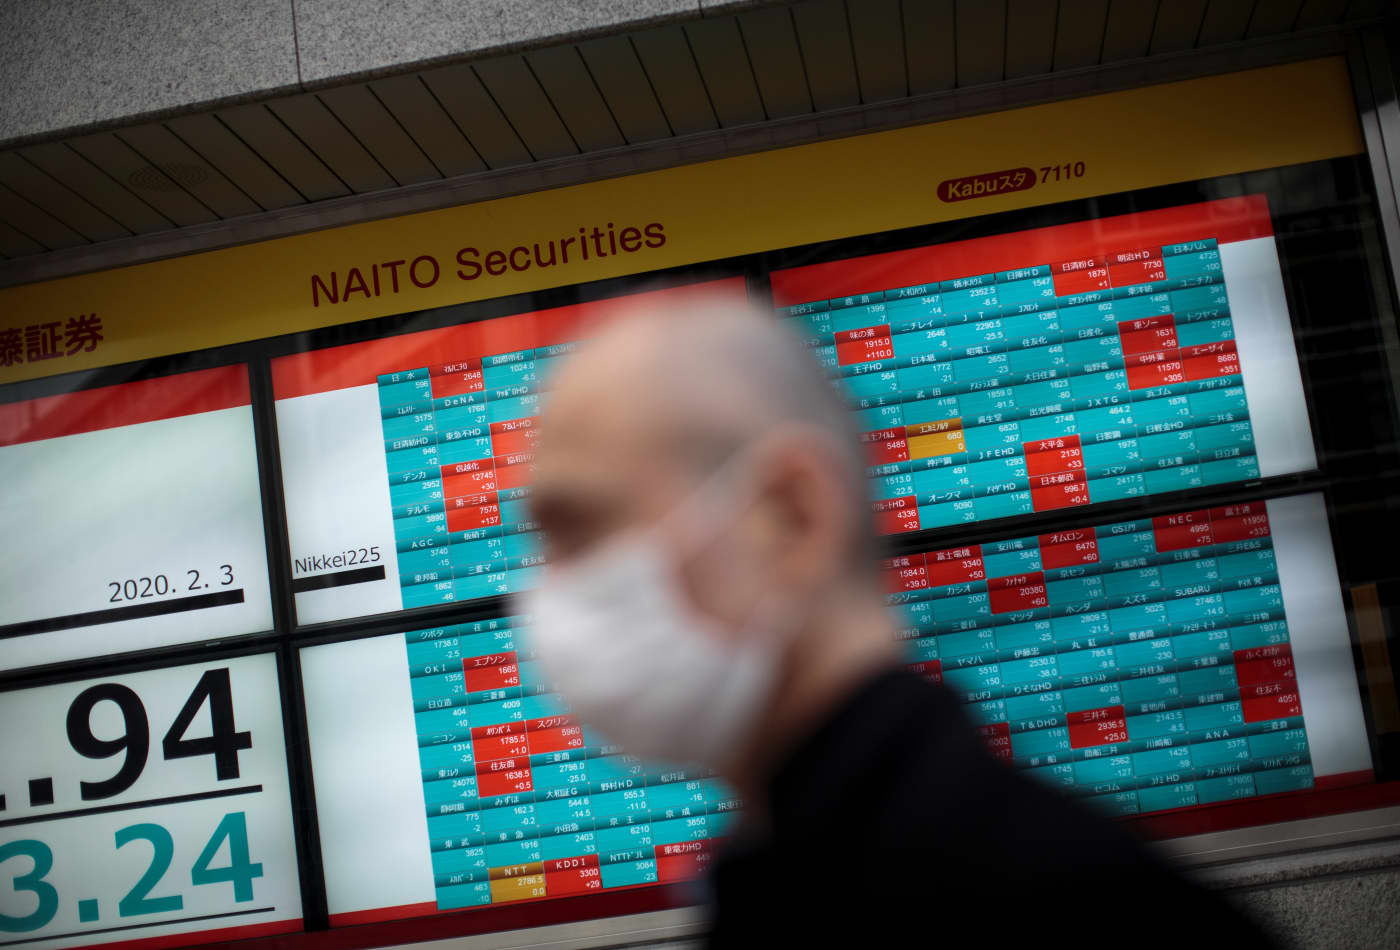 Most major Asian markets lower; shares of SMIC in Hong Kong tumble as U.S.-China tech tensions rise